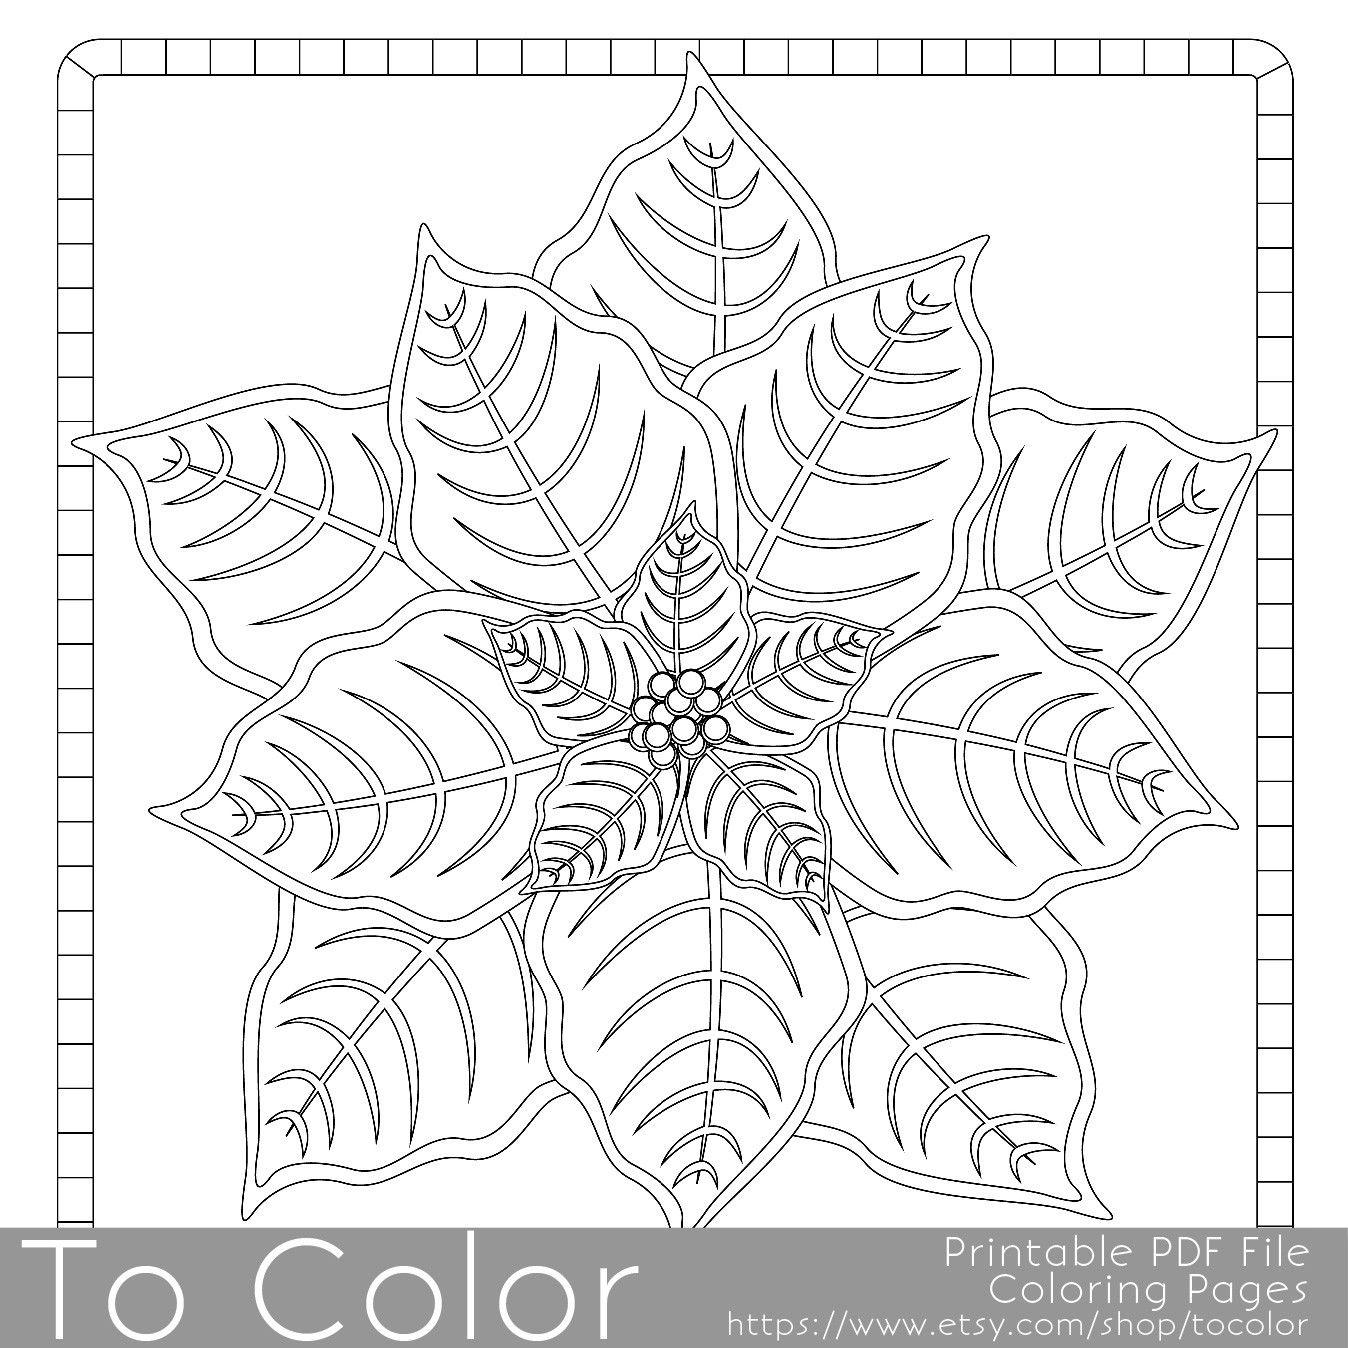 This Christmas Poinsettia Coloring Page For Adults Has A Detailed